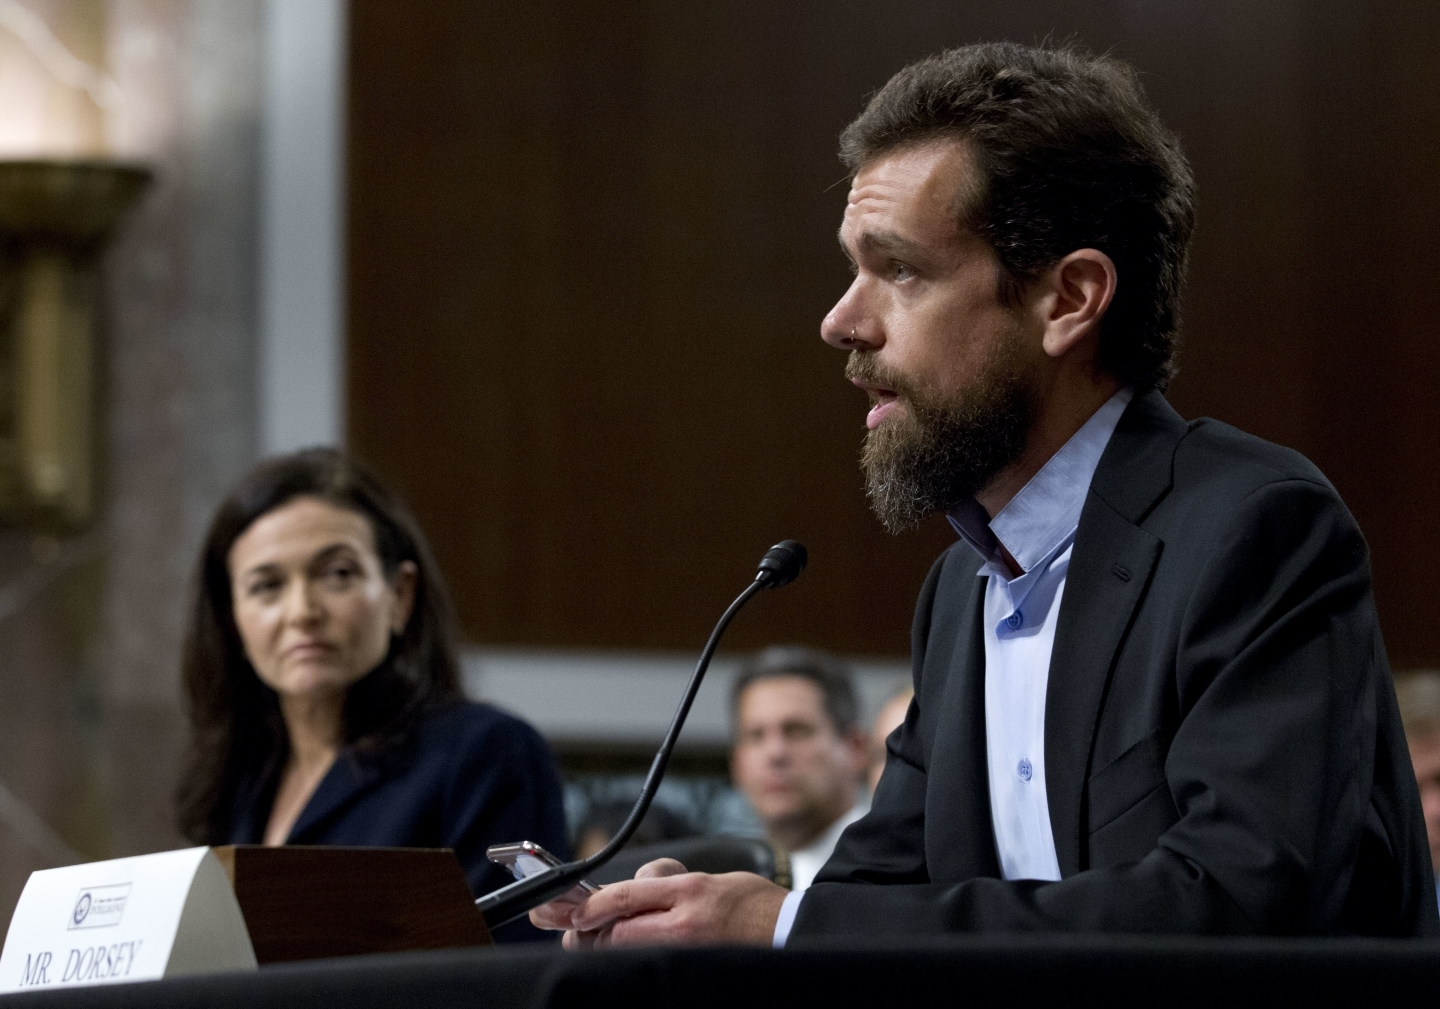 Twitter details bans of political ads, limits 'cause-based' ads